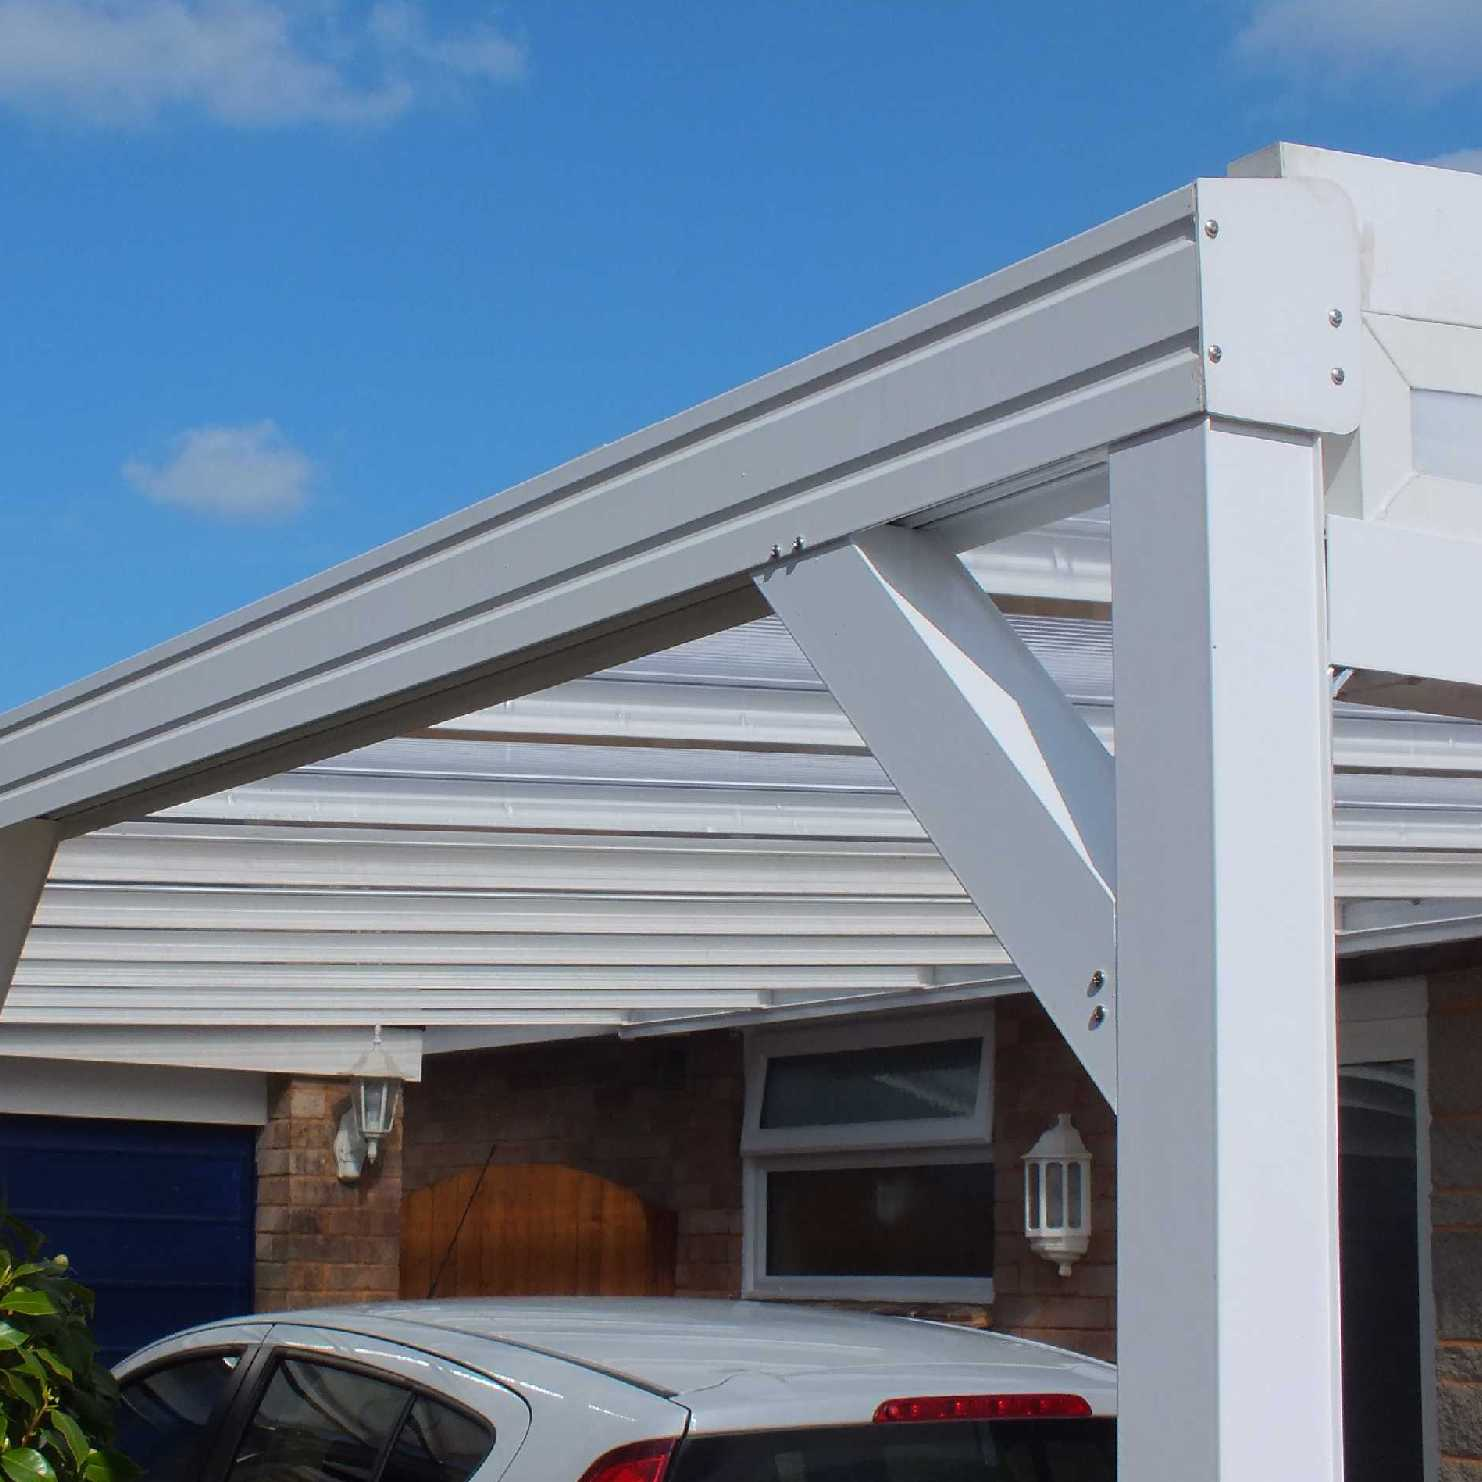 Great deals on Omega Smart Lean-To Canopy with 16mm Polycarbonate Glazing - 12.0m (W) x 3.0m (P), (5) Supporting Posts